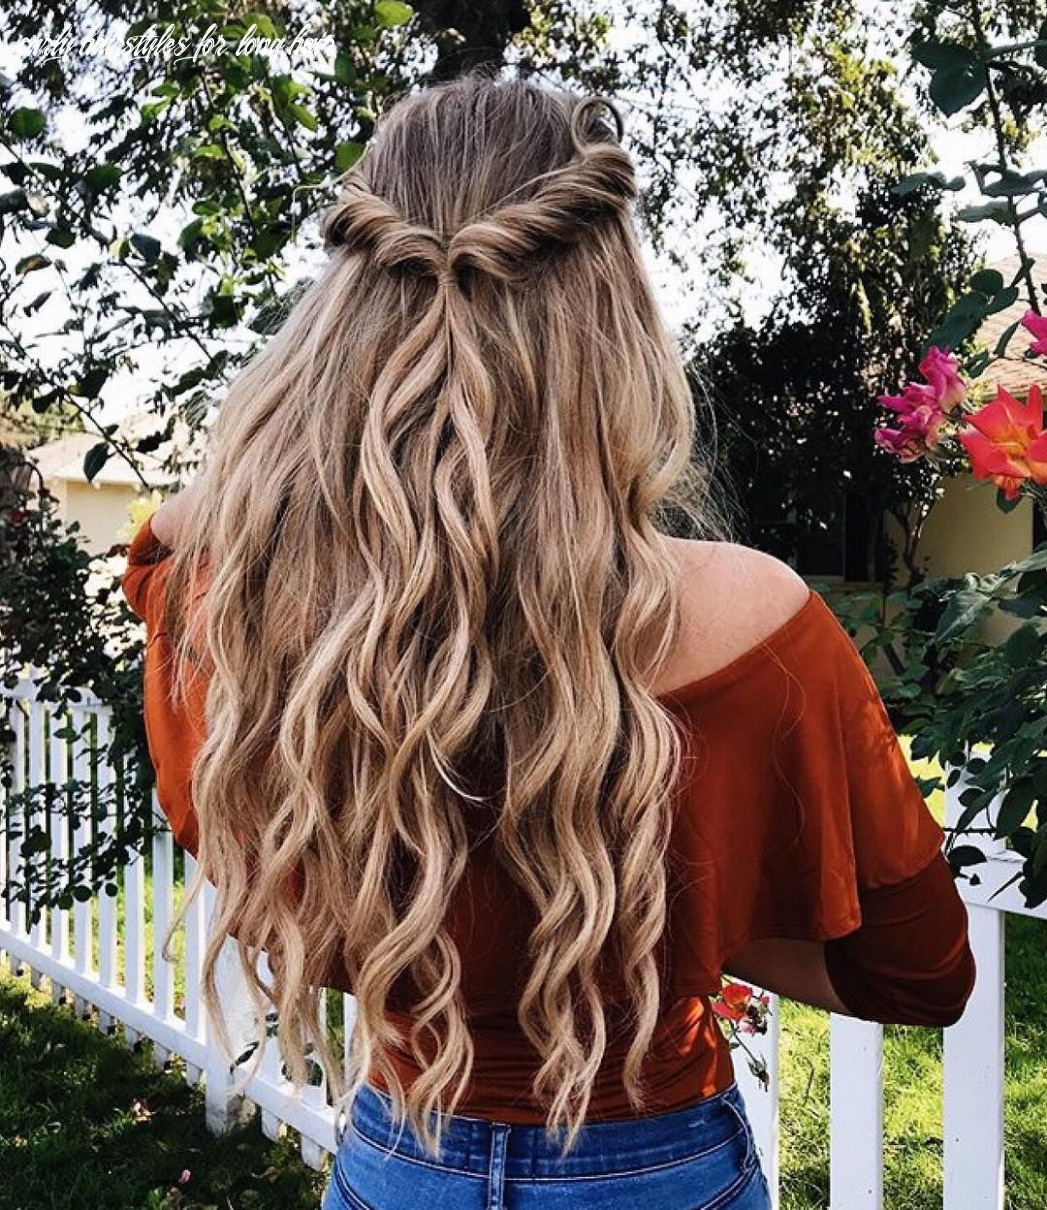 Pin on ❤ braids & tails & buns curly hairstyles for long hair